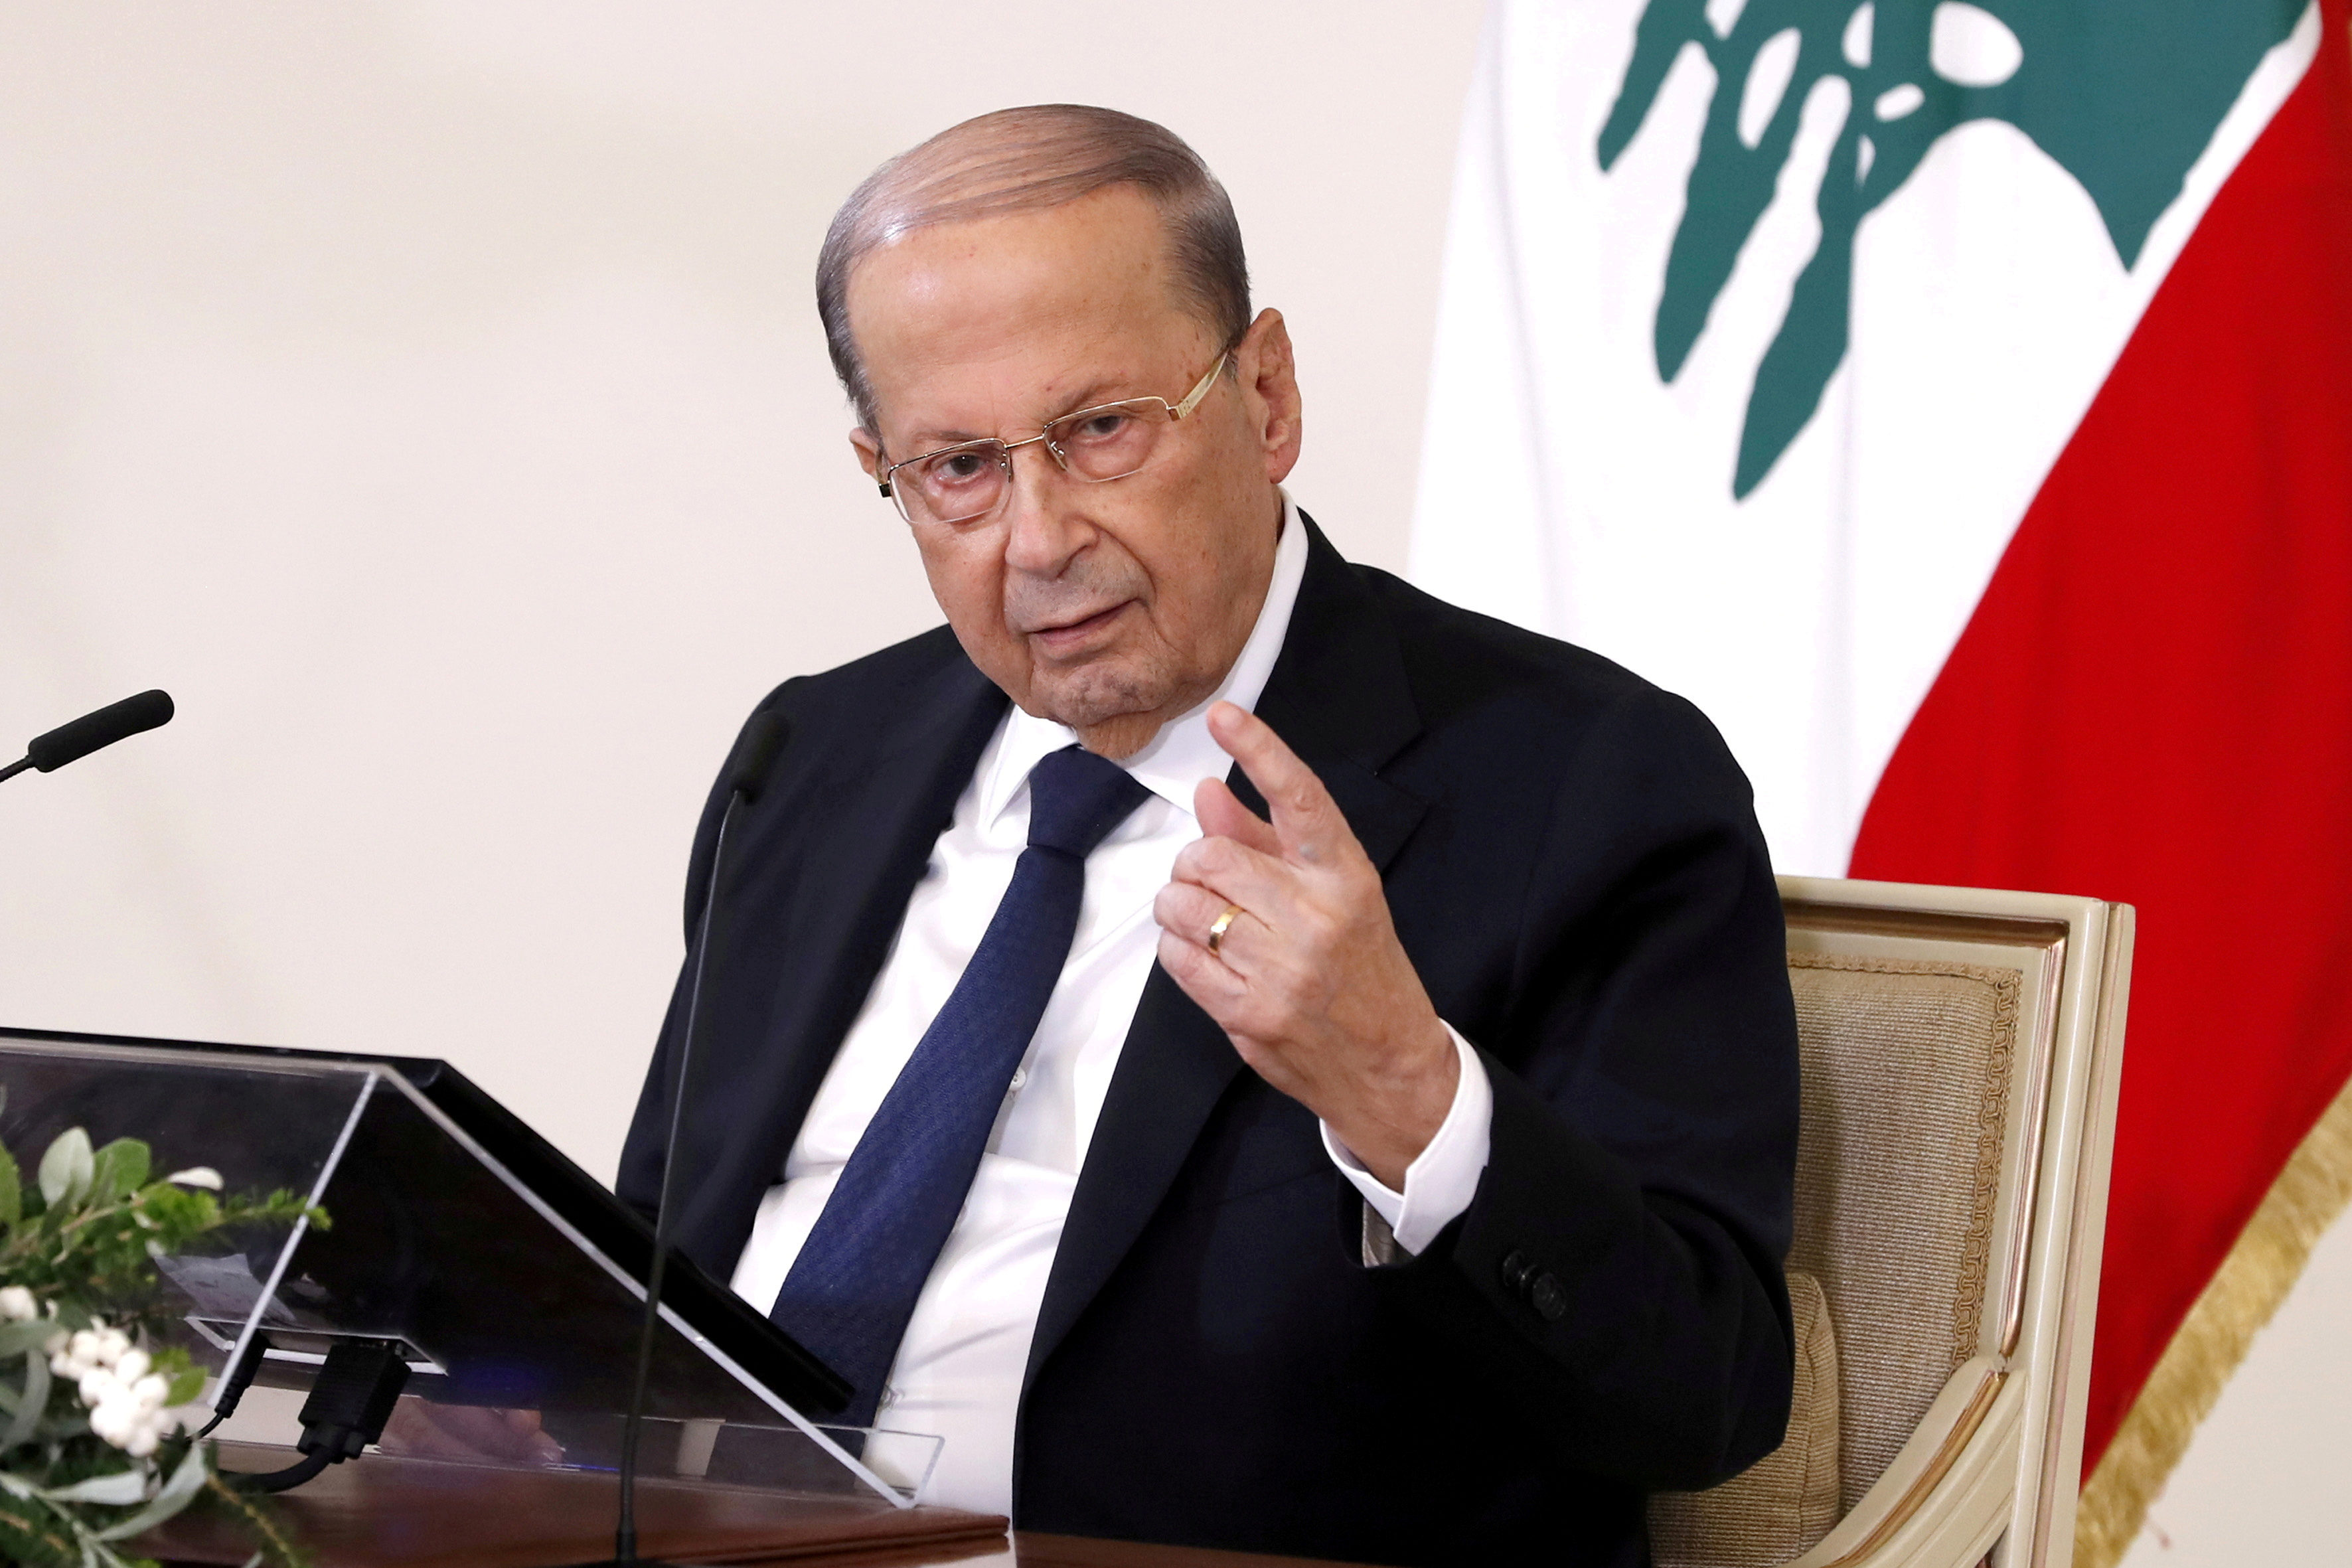 Lebanon's President Michel Aoun speaks during a news conference at the presidential palace in Baabda, Lebanon October 21, 2020. Dalati Nohra/Handout via REUTERS